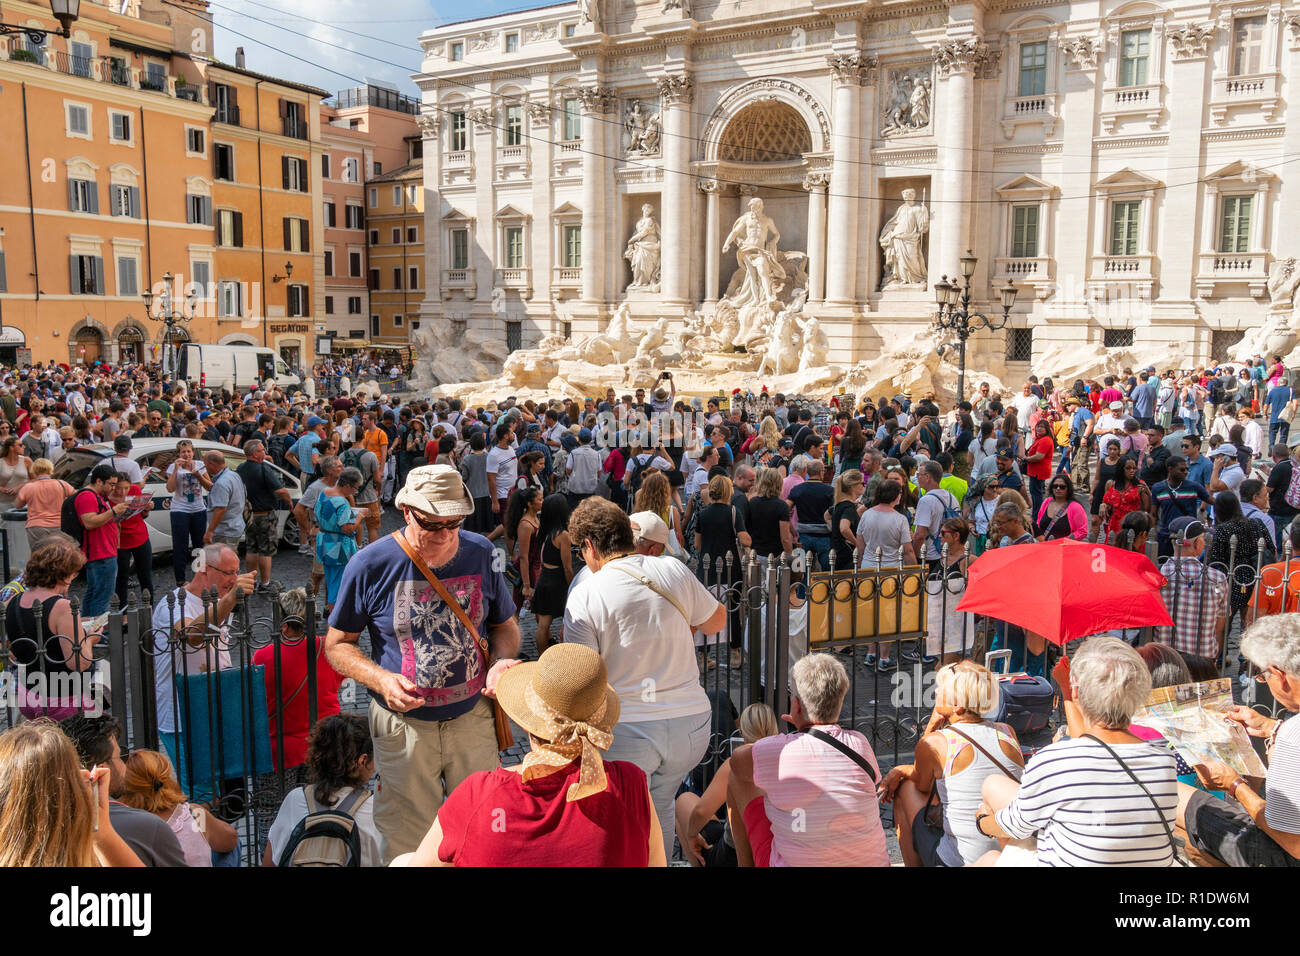 Hordes of tourists visiting the Trevi Fountain, one of the most popular tourist attractions in  Rome, Italy. - Stock Image